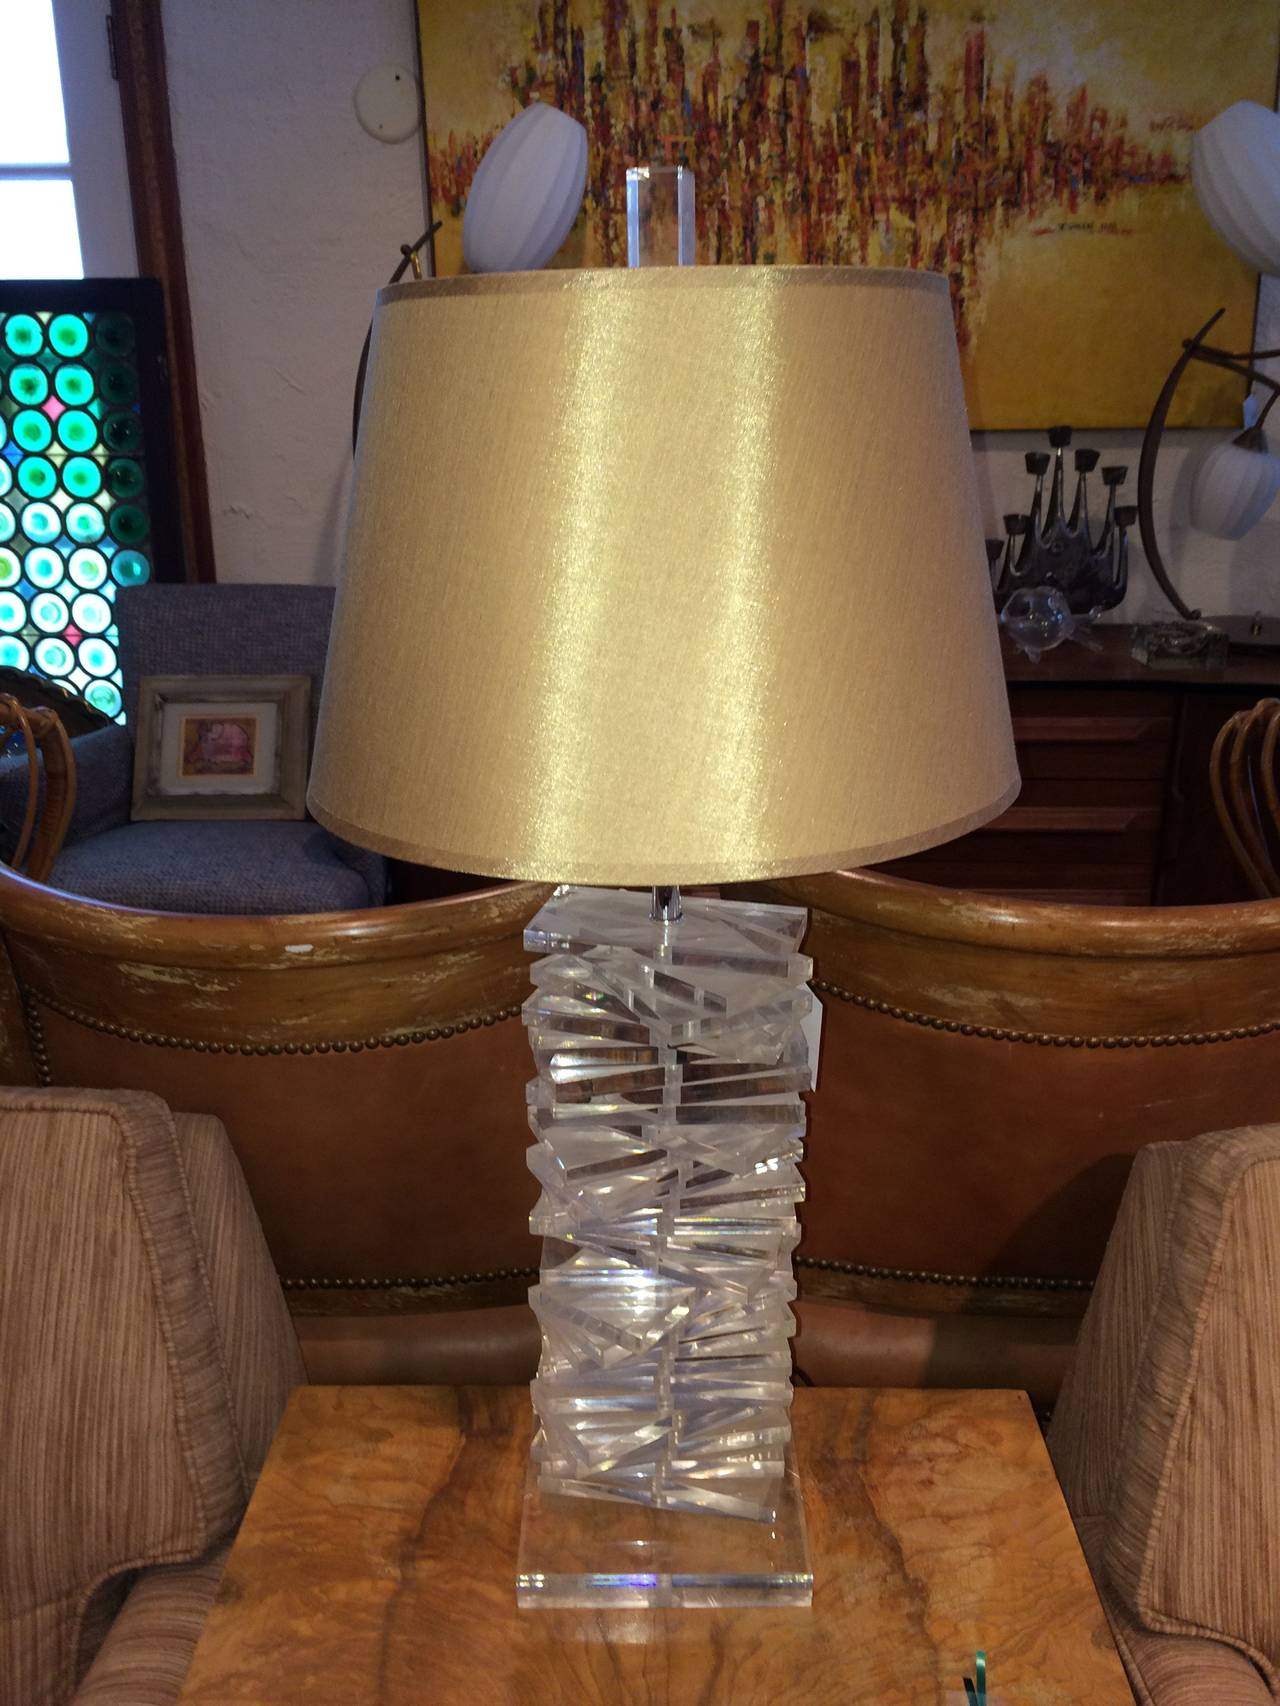 Hollywood Regency Sculptural Helix Lucite Lamp In Excellent Condition For Sale In Redding, CT